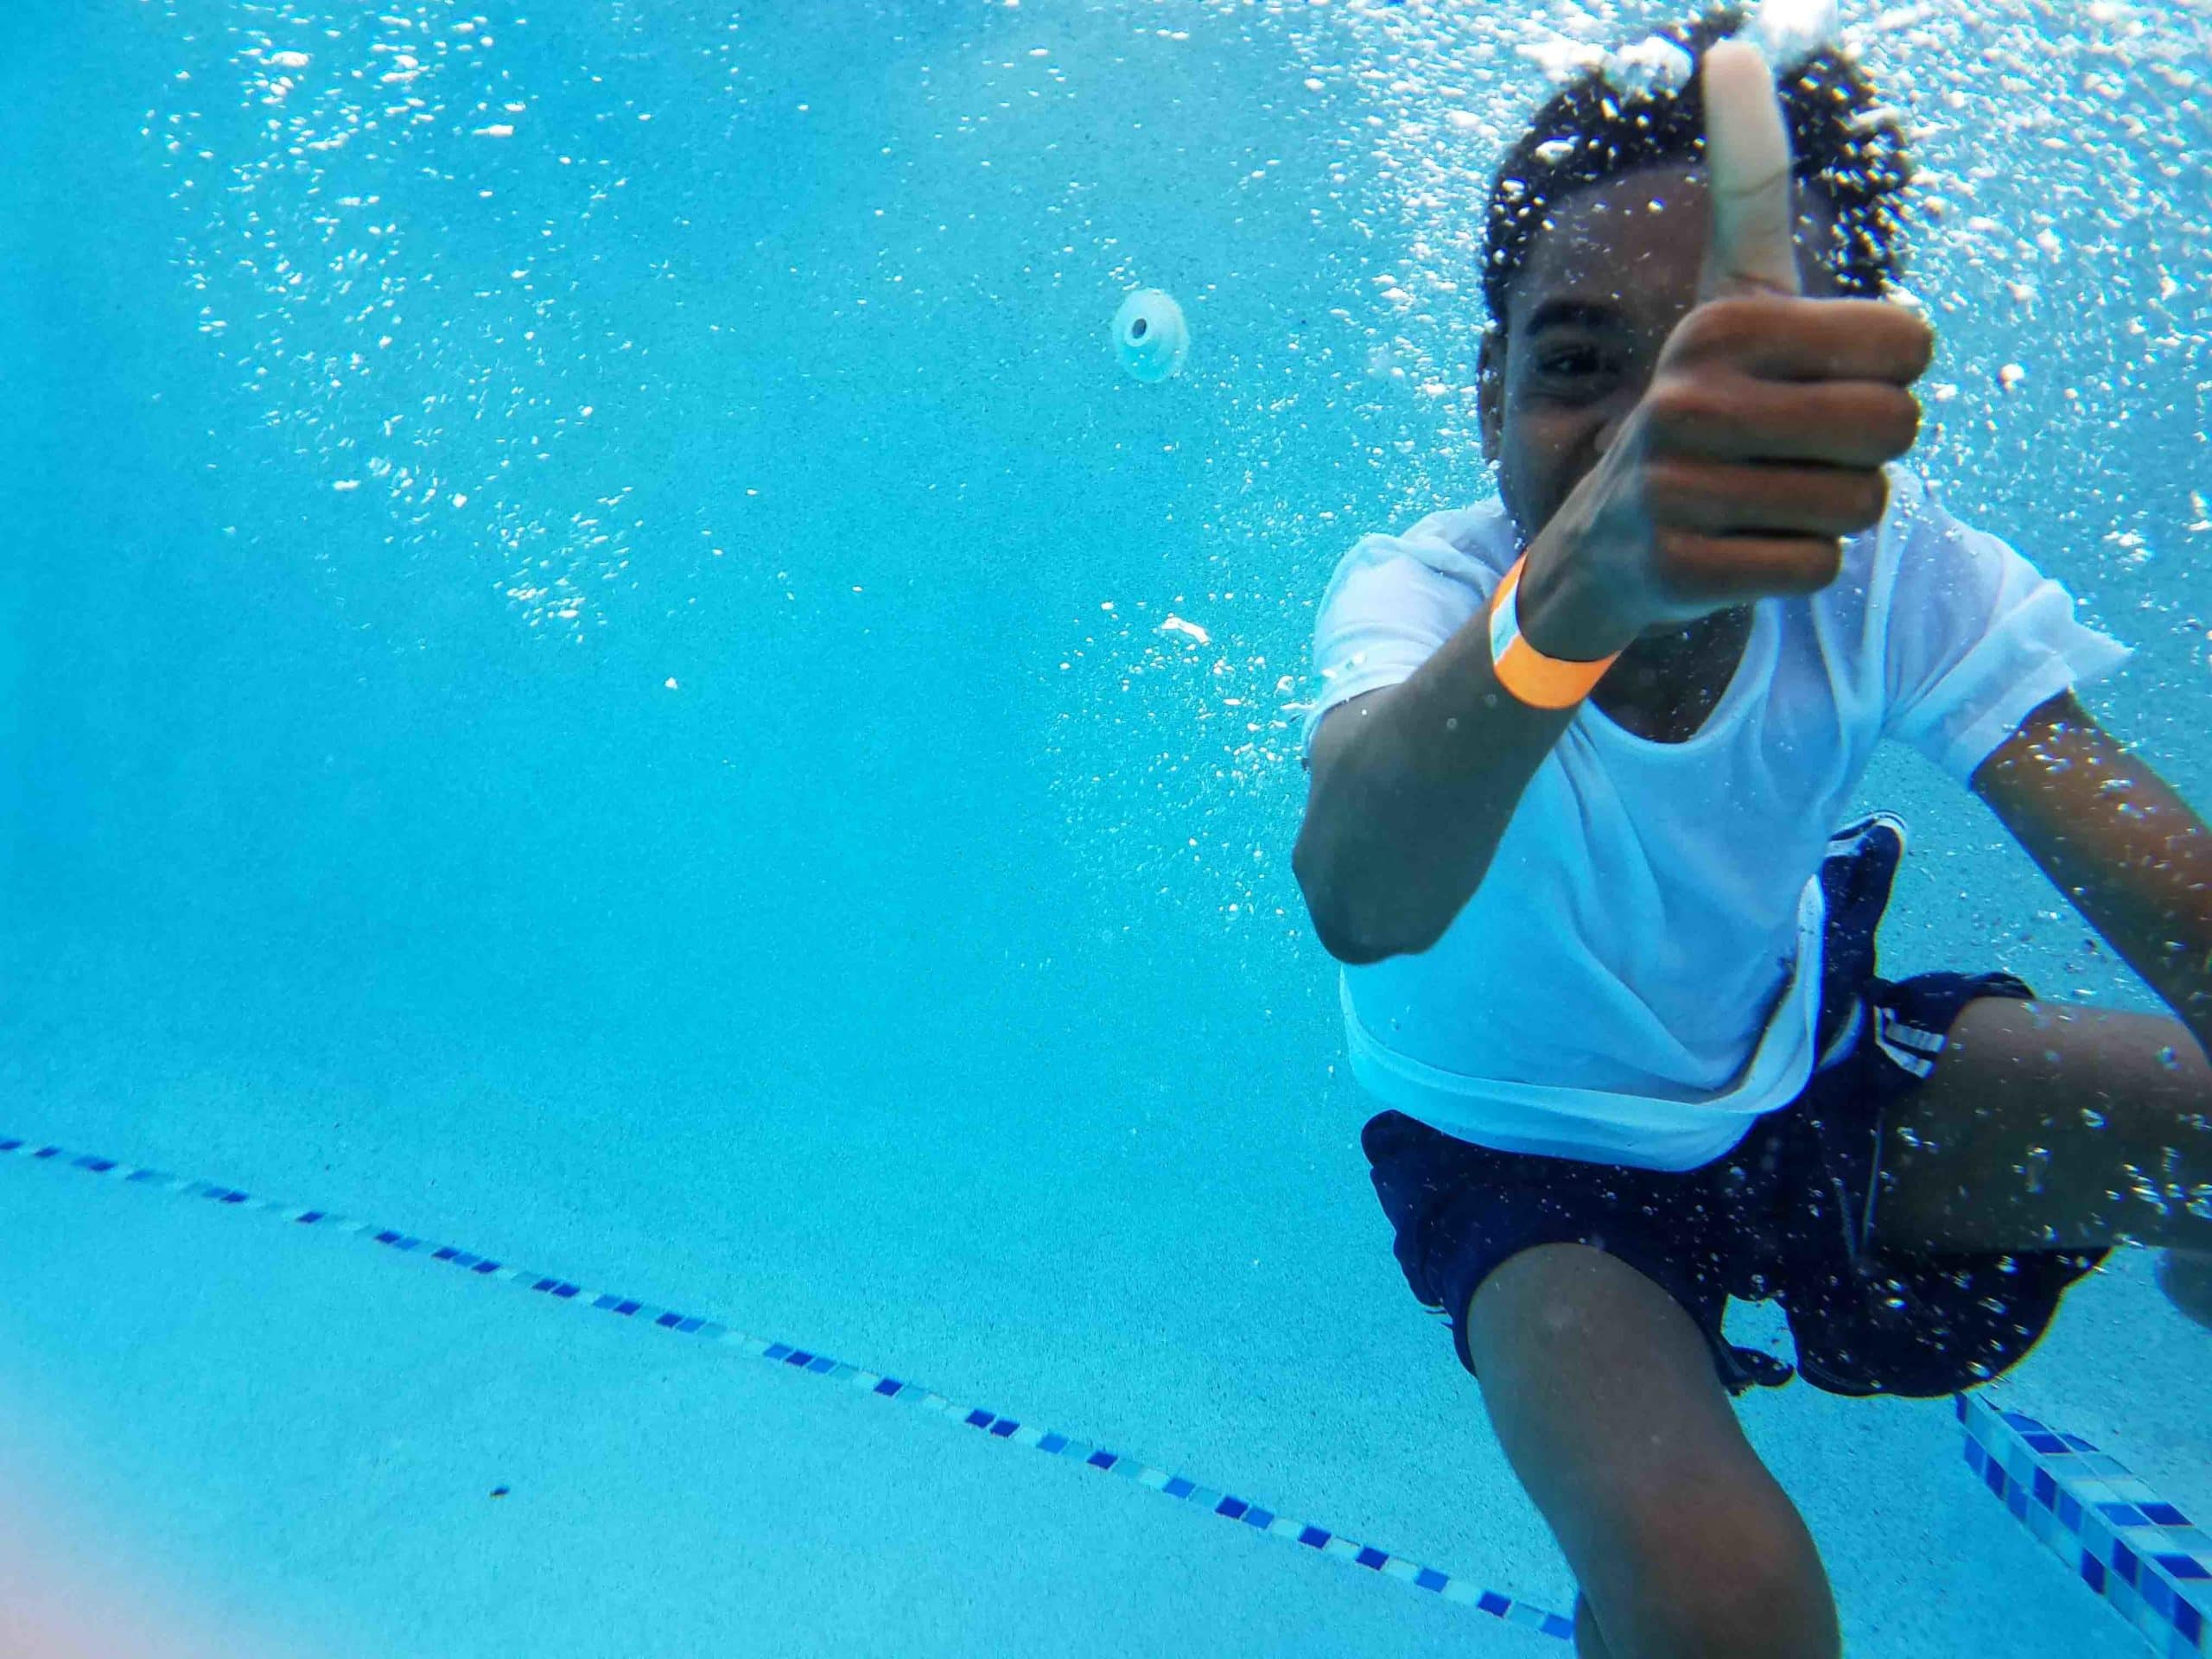 Young boy underwater gives a thumbs up